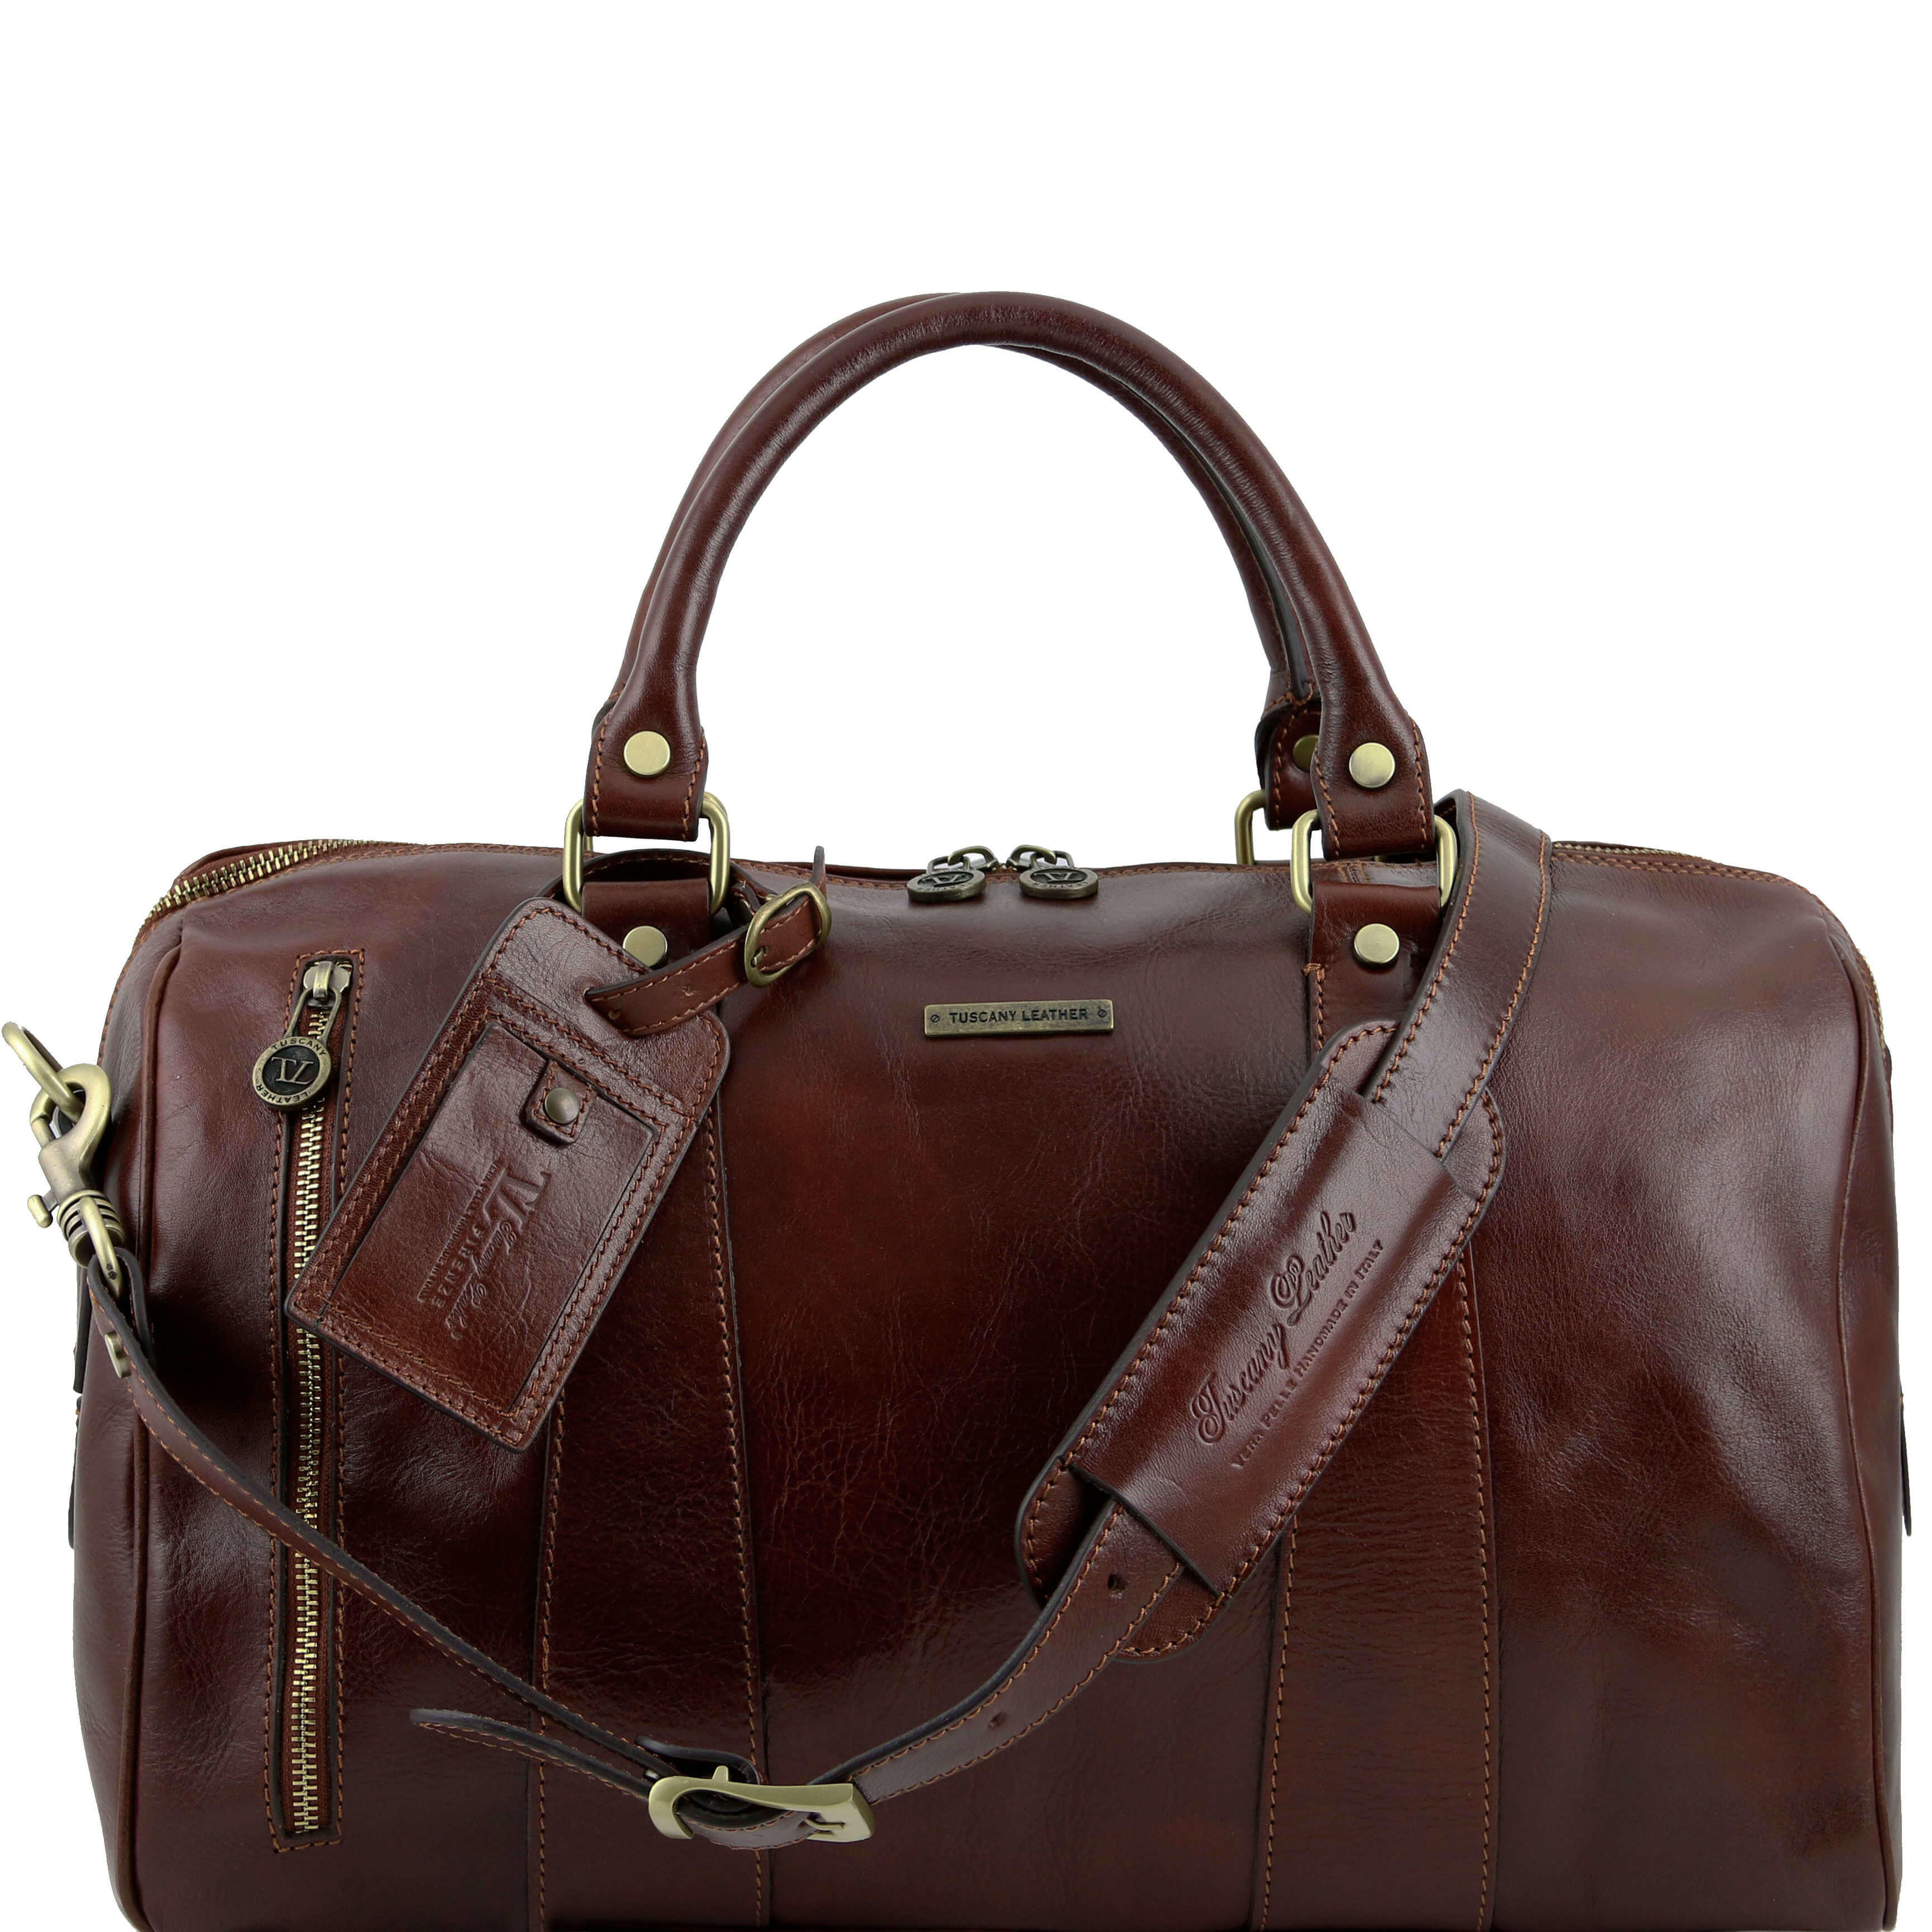 TL141216 Leather Voyager Holdall-Travel-Luggage-Duffel Bag-Case